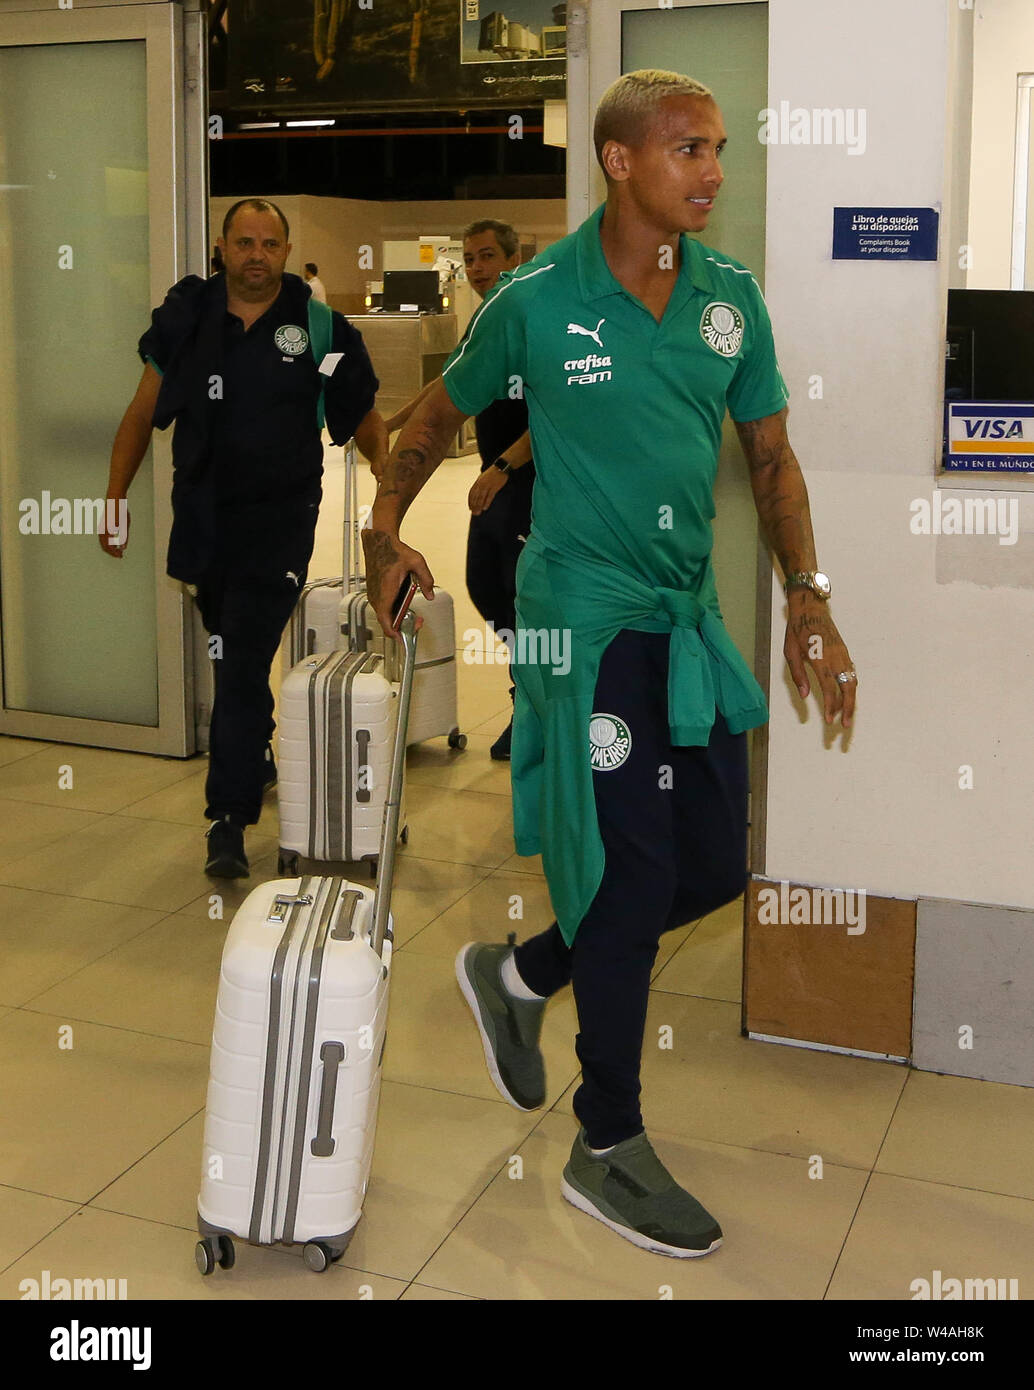 Buenos Aires, Argentina. 21st July, 2019. The Deyverson player of SE Palmeiras during landing at Buenos Aires International Airport. Credit: Cesar Greco/FotoArena/Alamy Live News - Stock Image